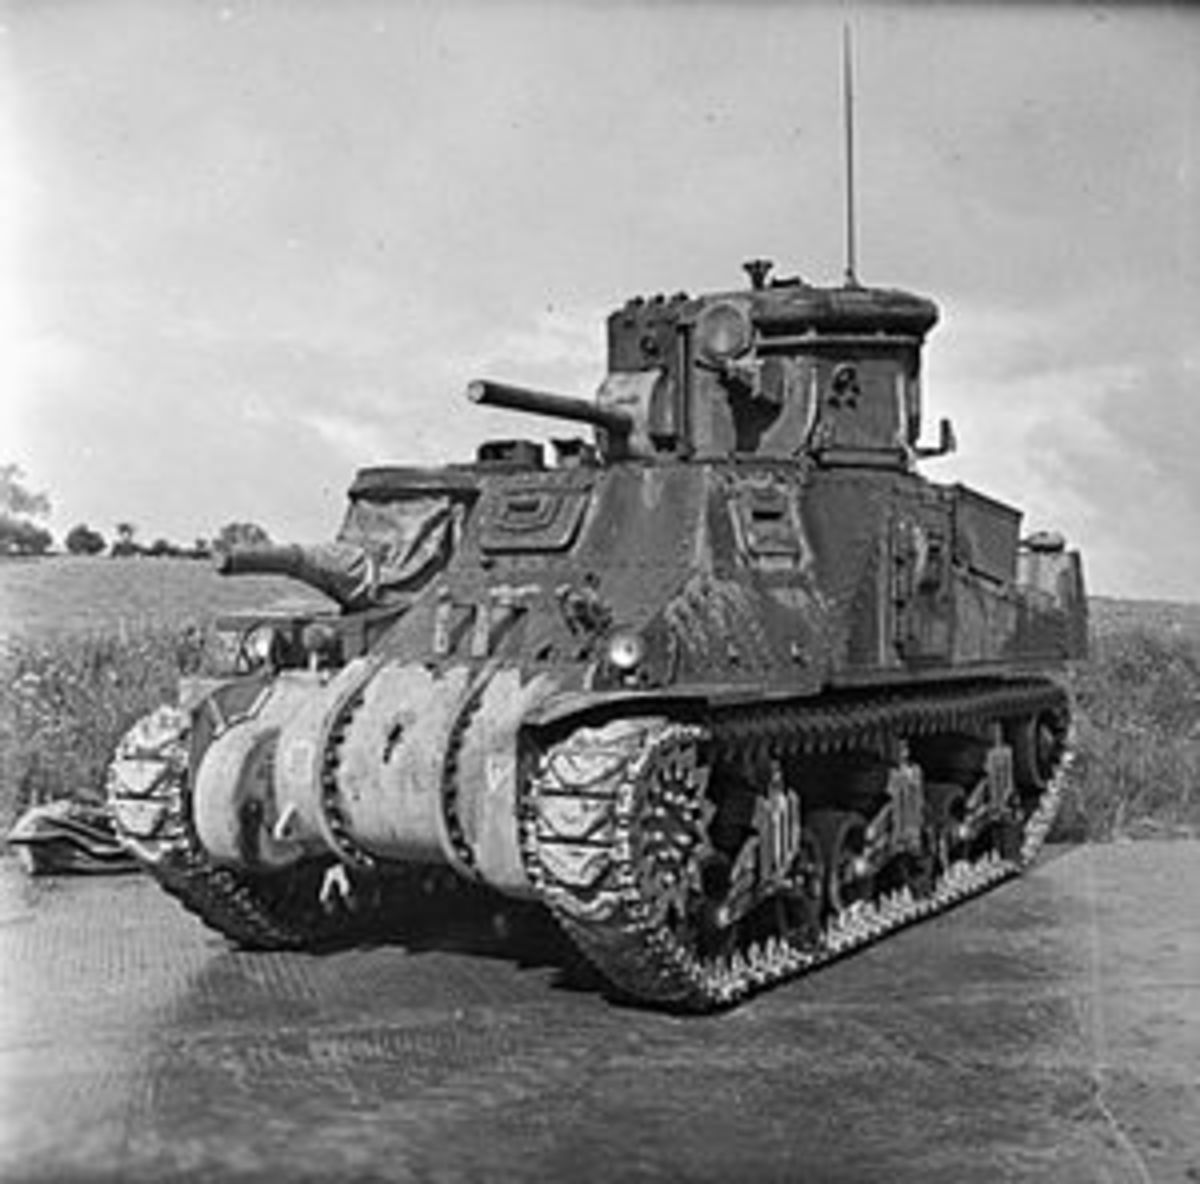 Tank fitted with powerful dazzle lights to protect advancing forces.